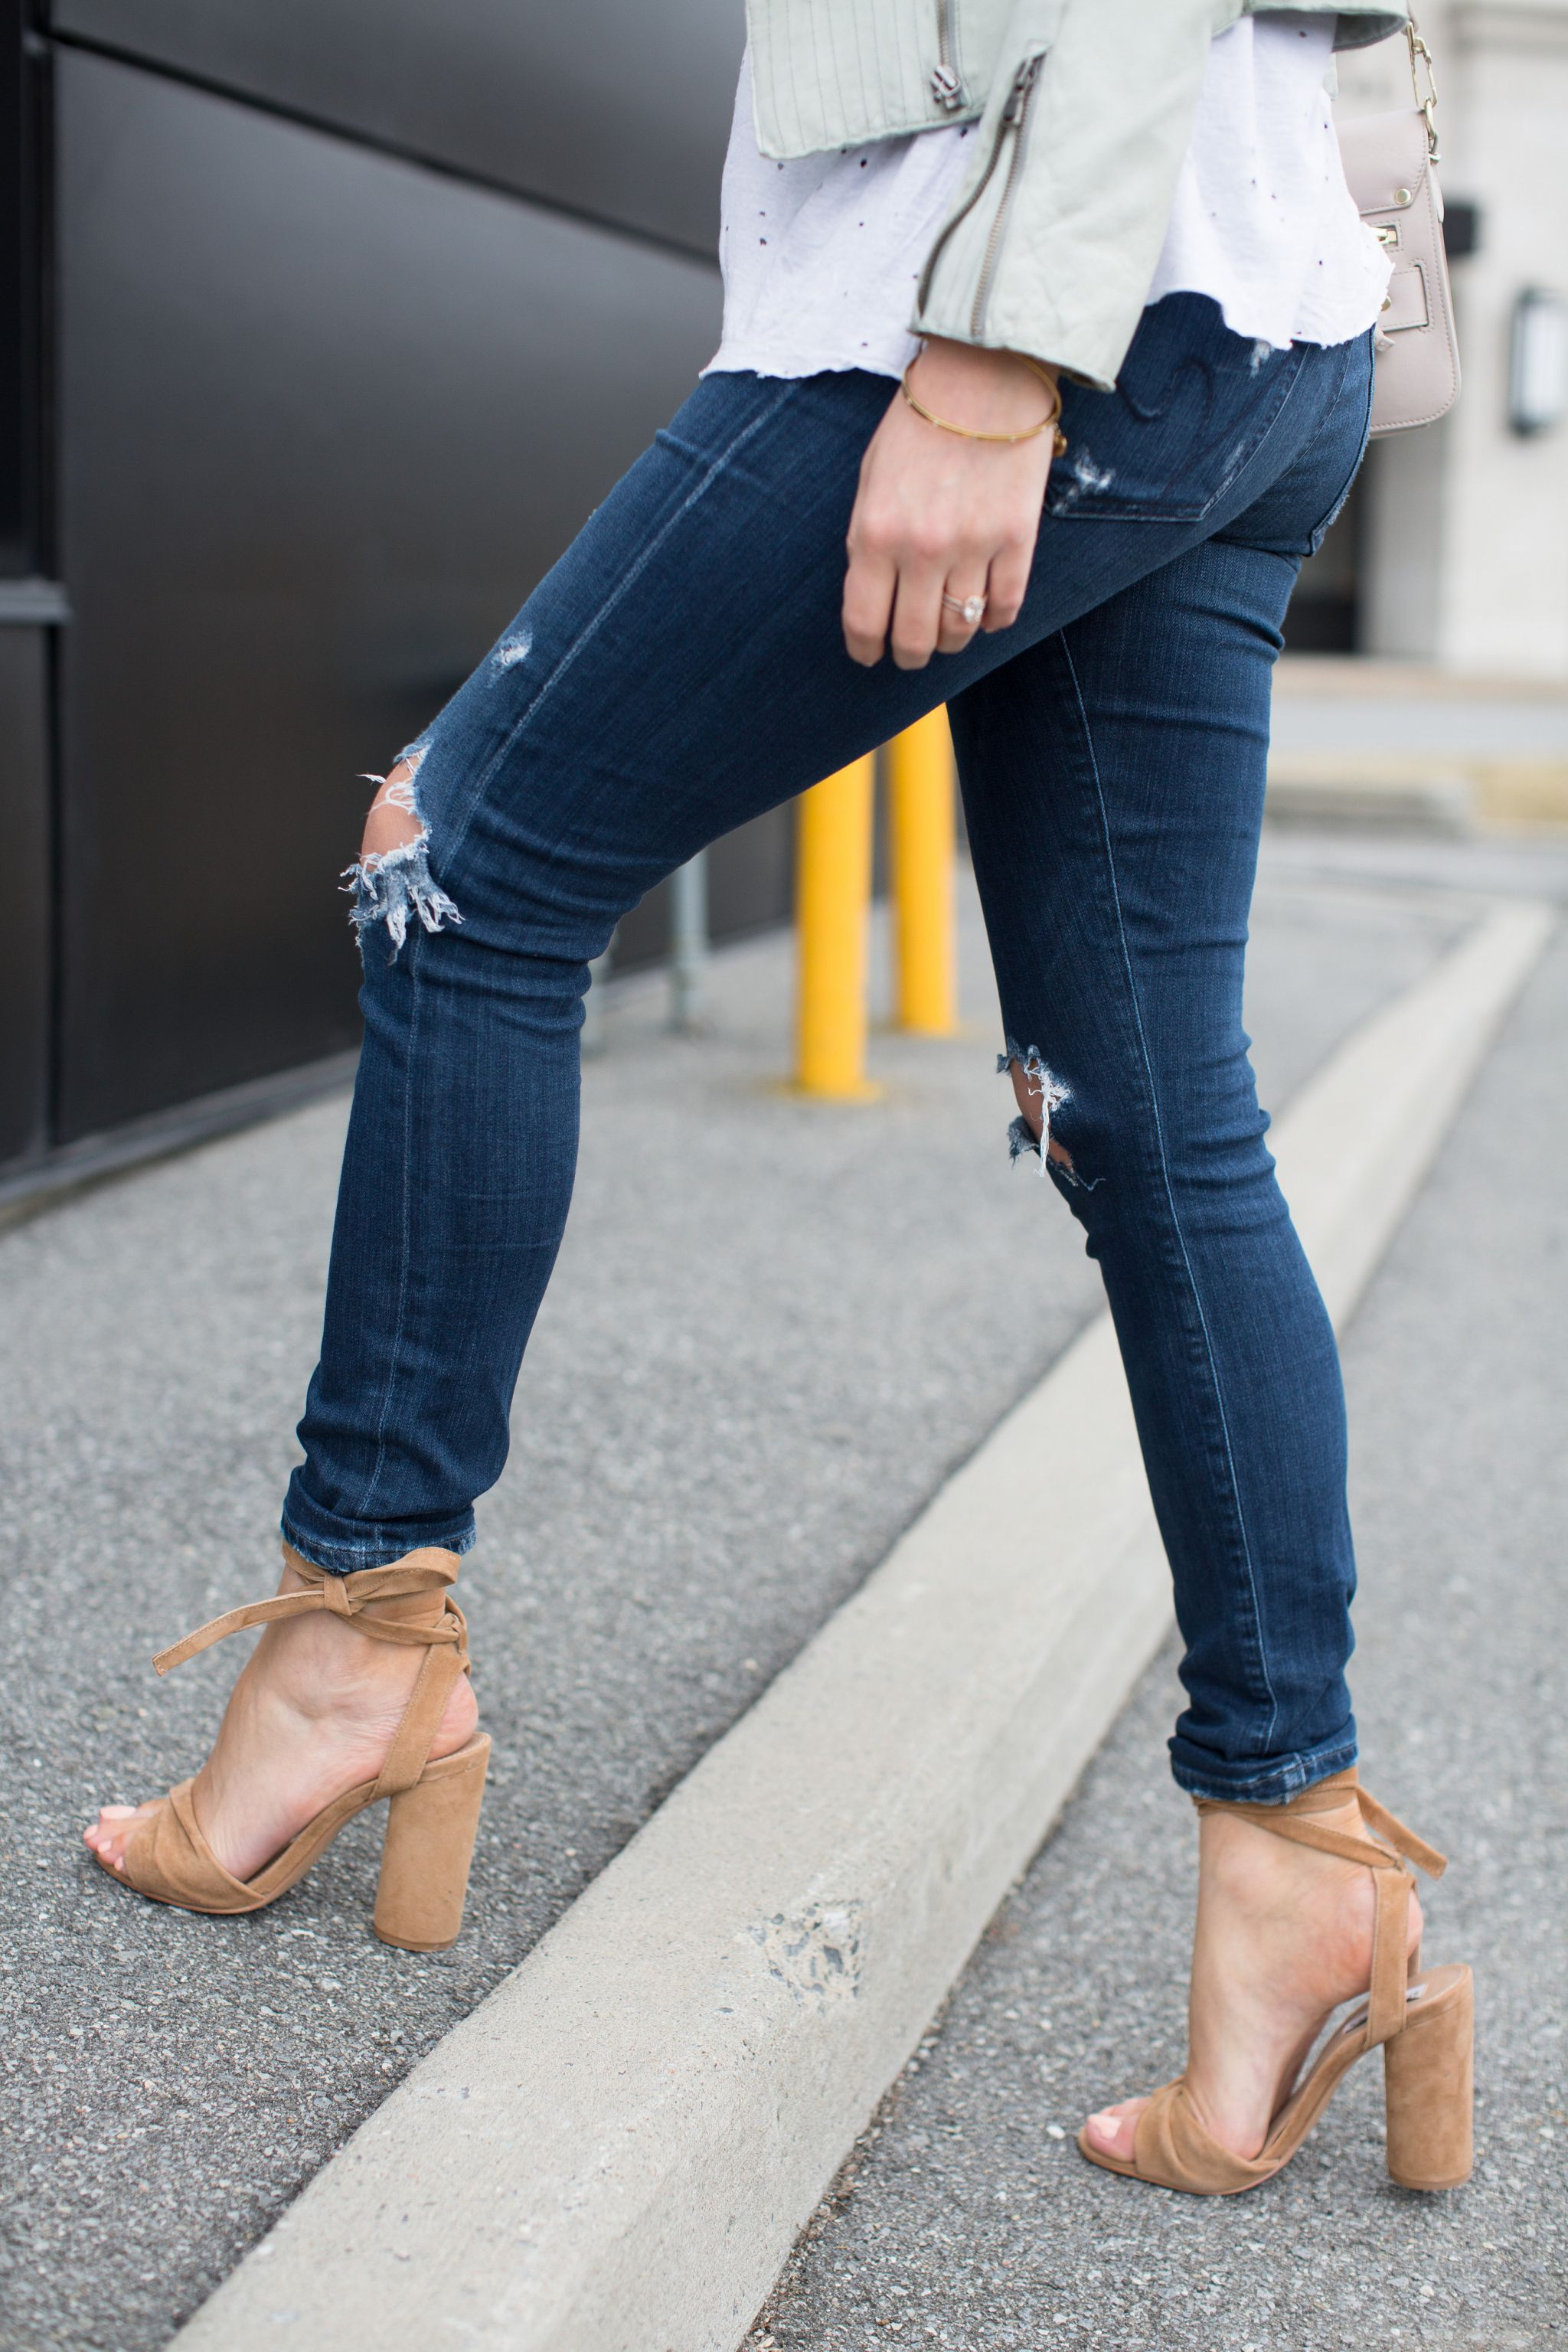 shopbop sale picks, life with aco, acoest1984, citizens of humanity jeans and sandals